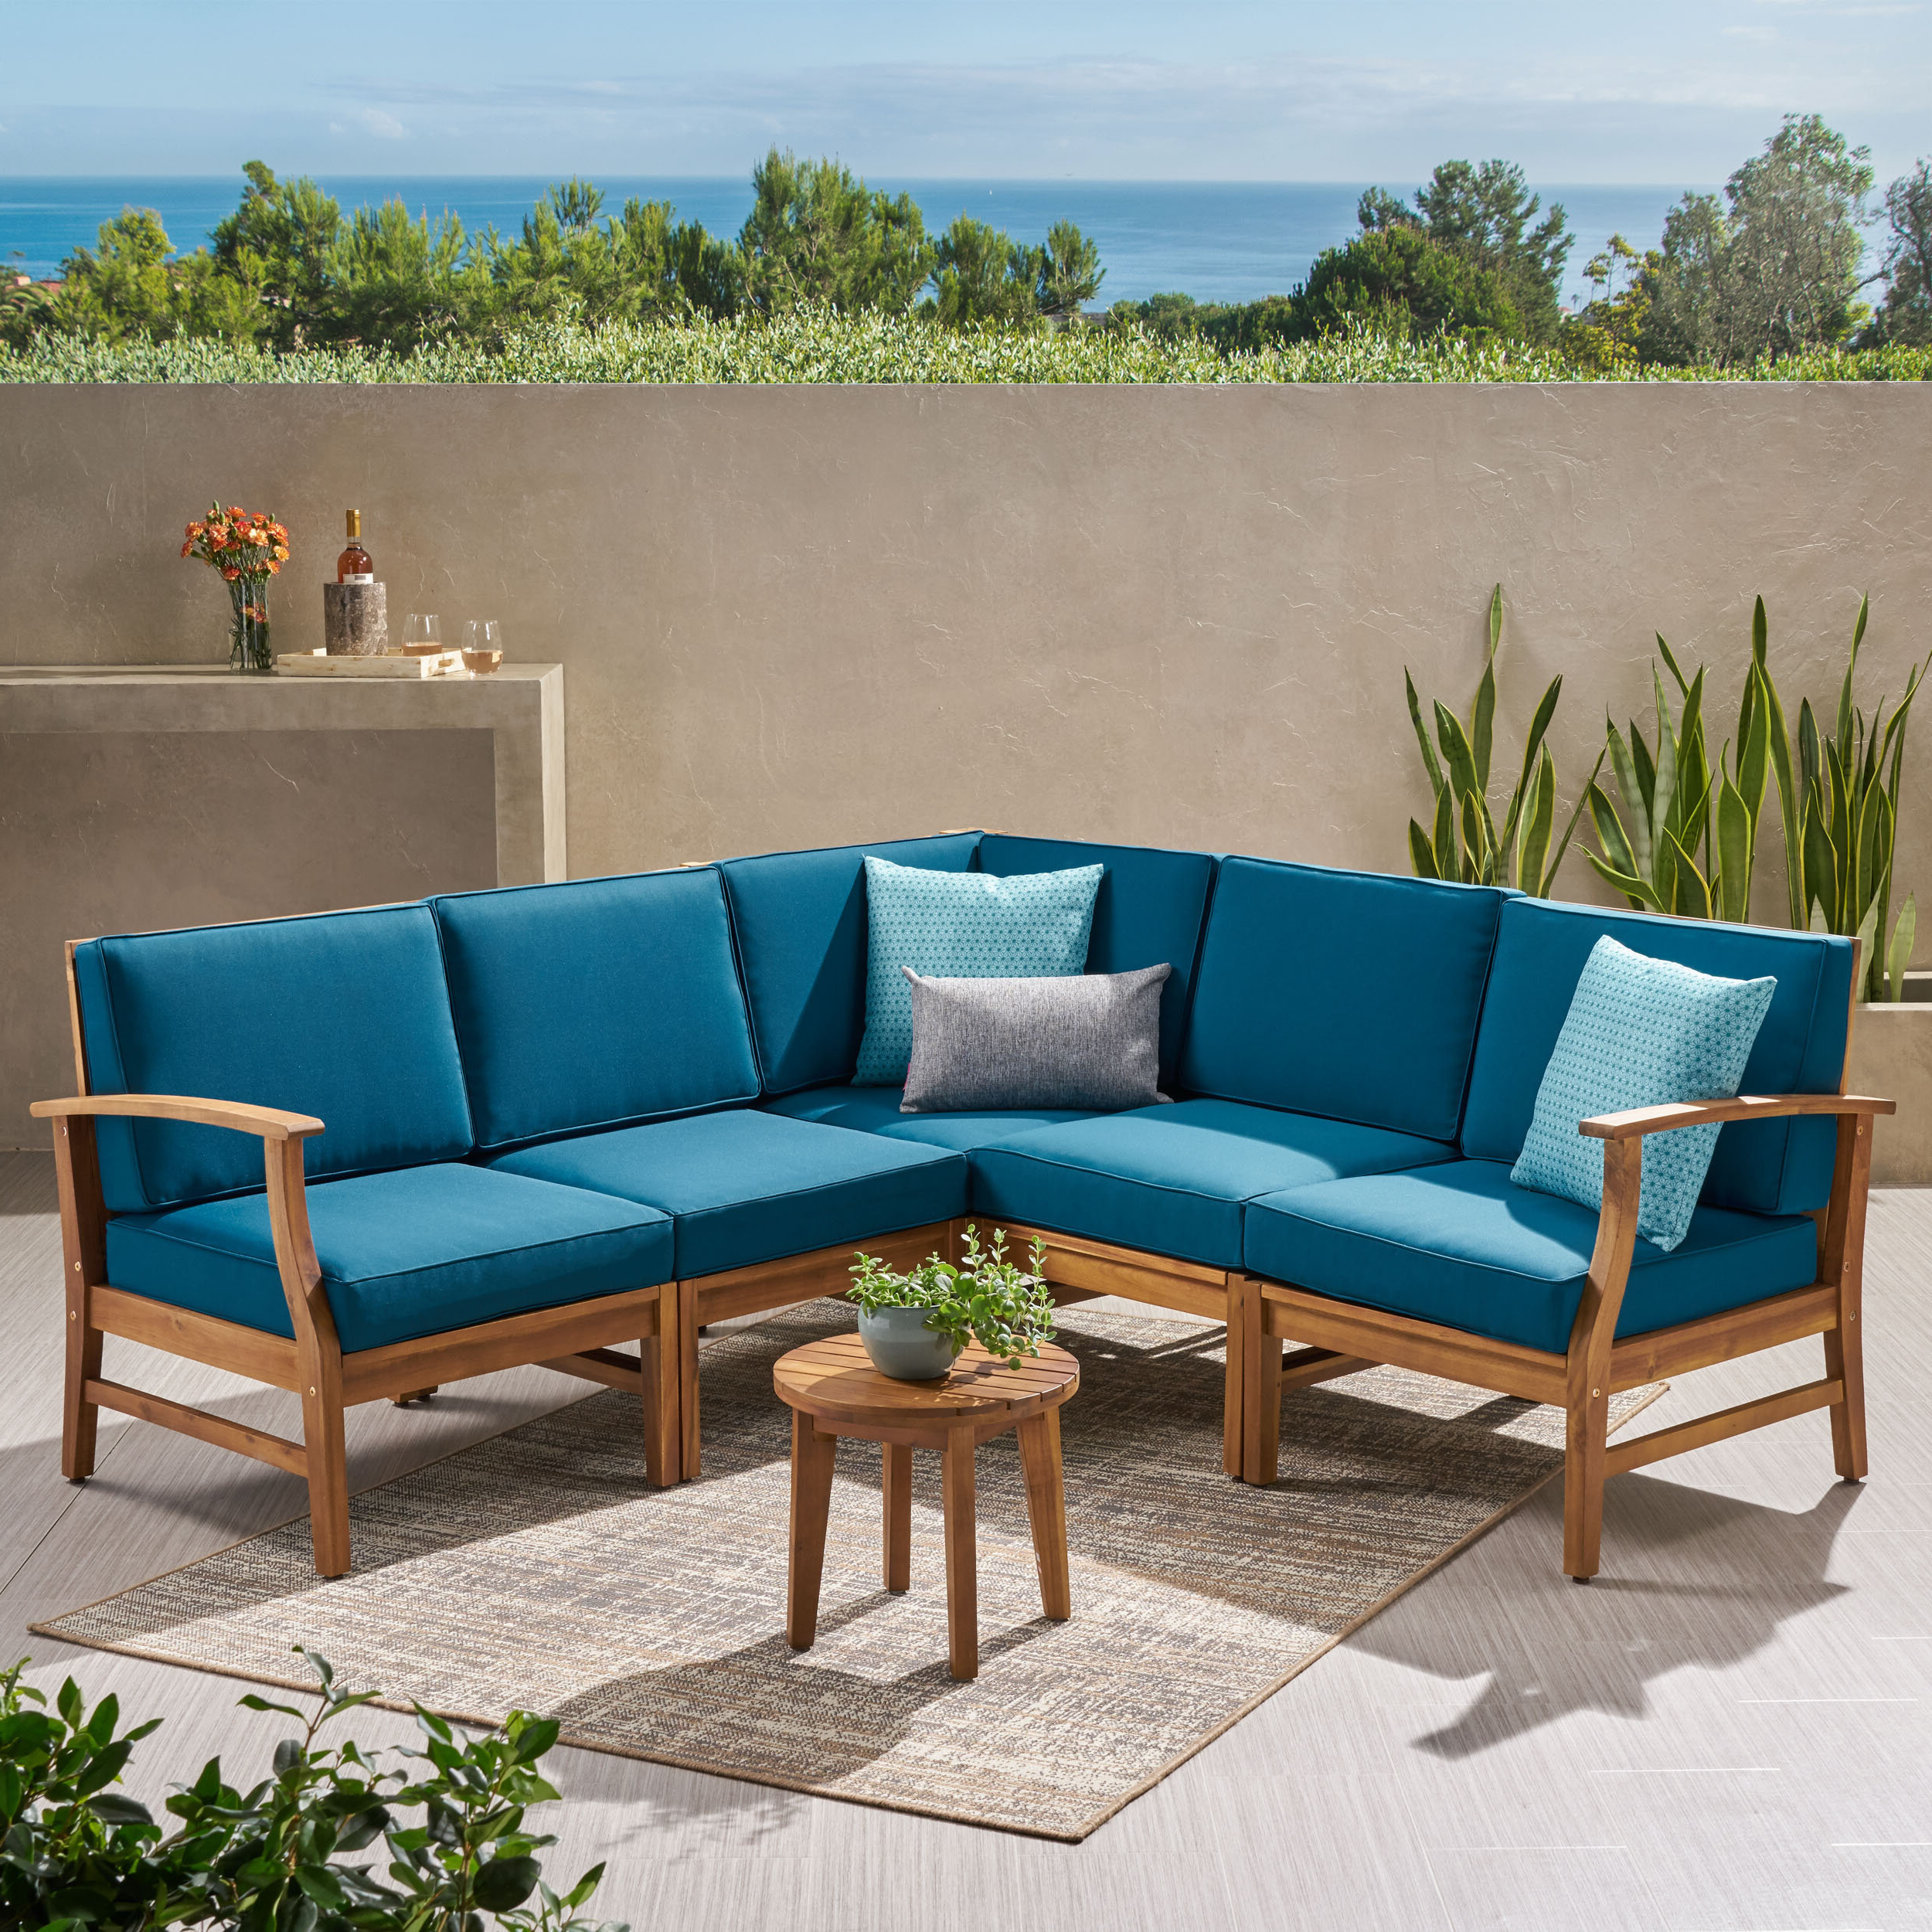 2020 Antonia Teak Patio Sectional With Cushions For Montford Teak Patio Sofas With Cushions (View 2 of 20)